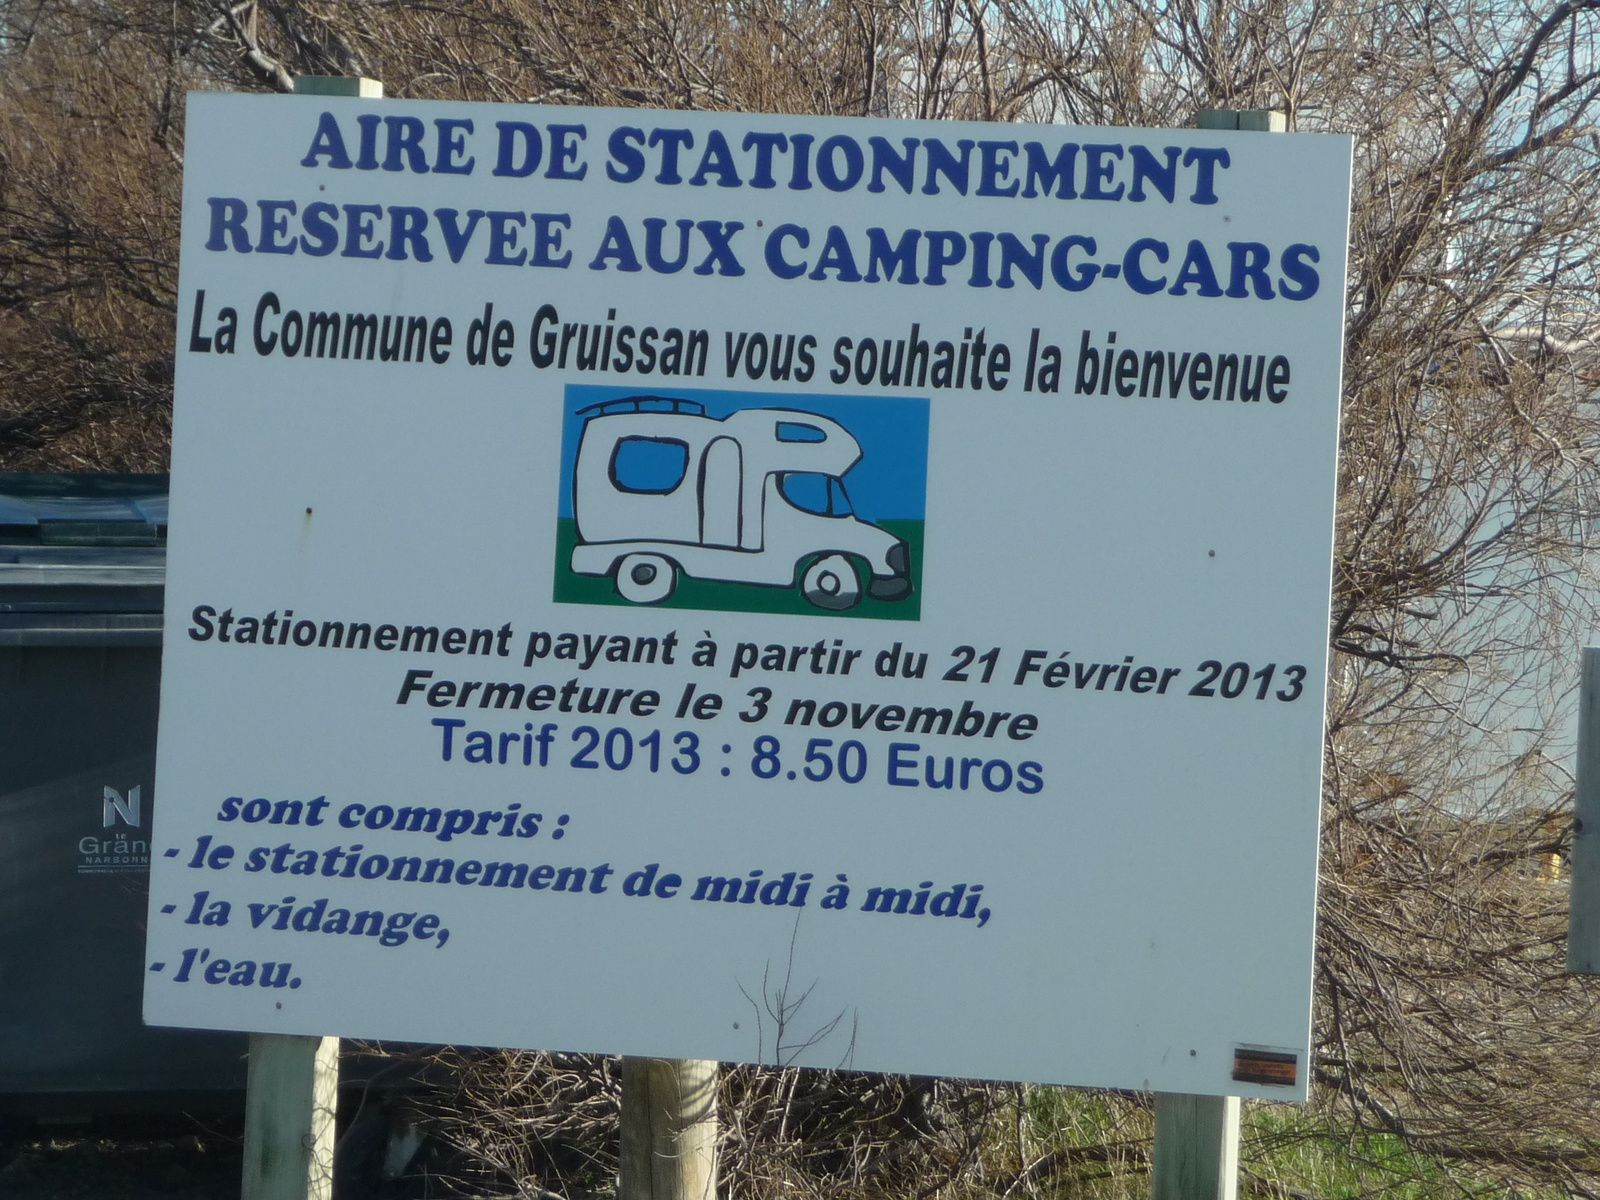 AIRE POUR CAMPING CARS A GRUISSAN ! Aude